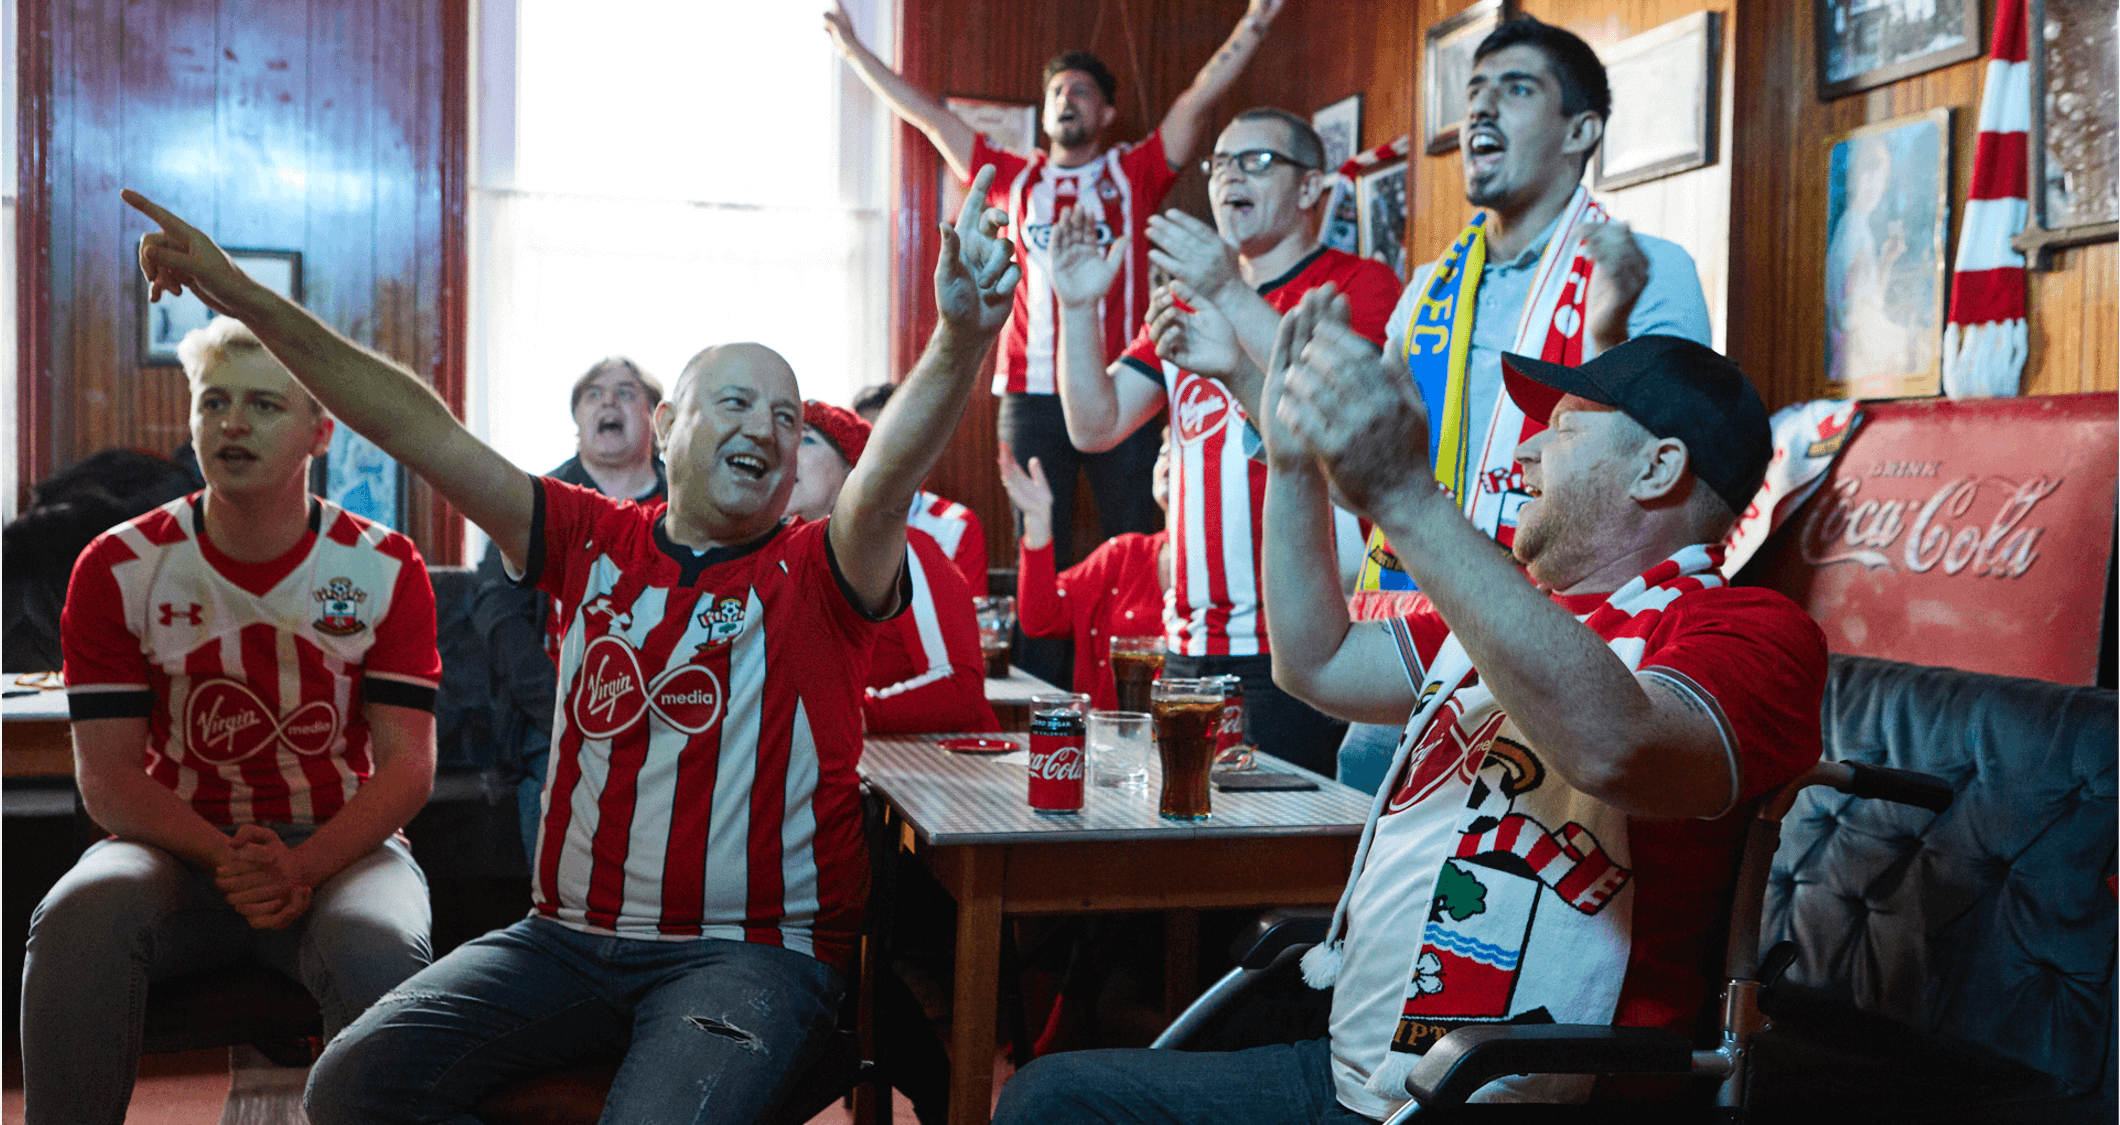 Group of Southampton fans cheer inside a pub with Coca Cola branding.